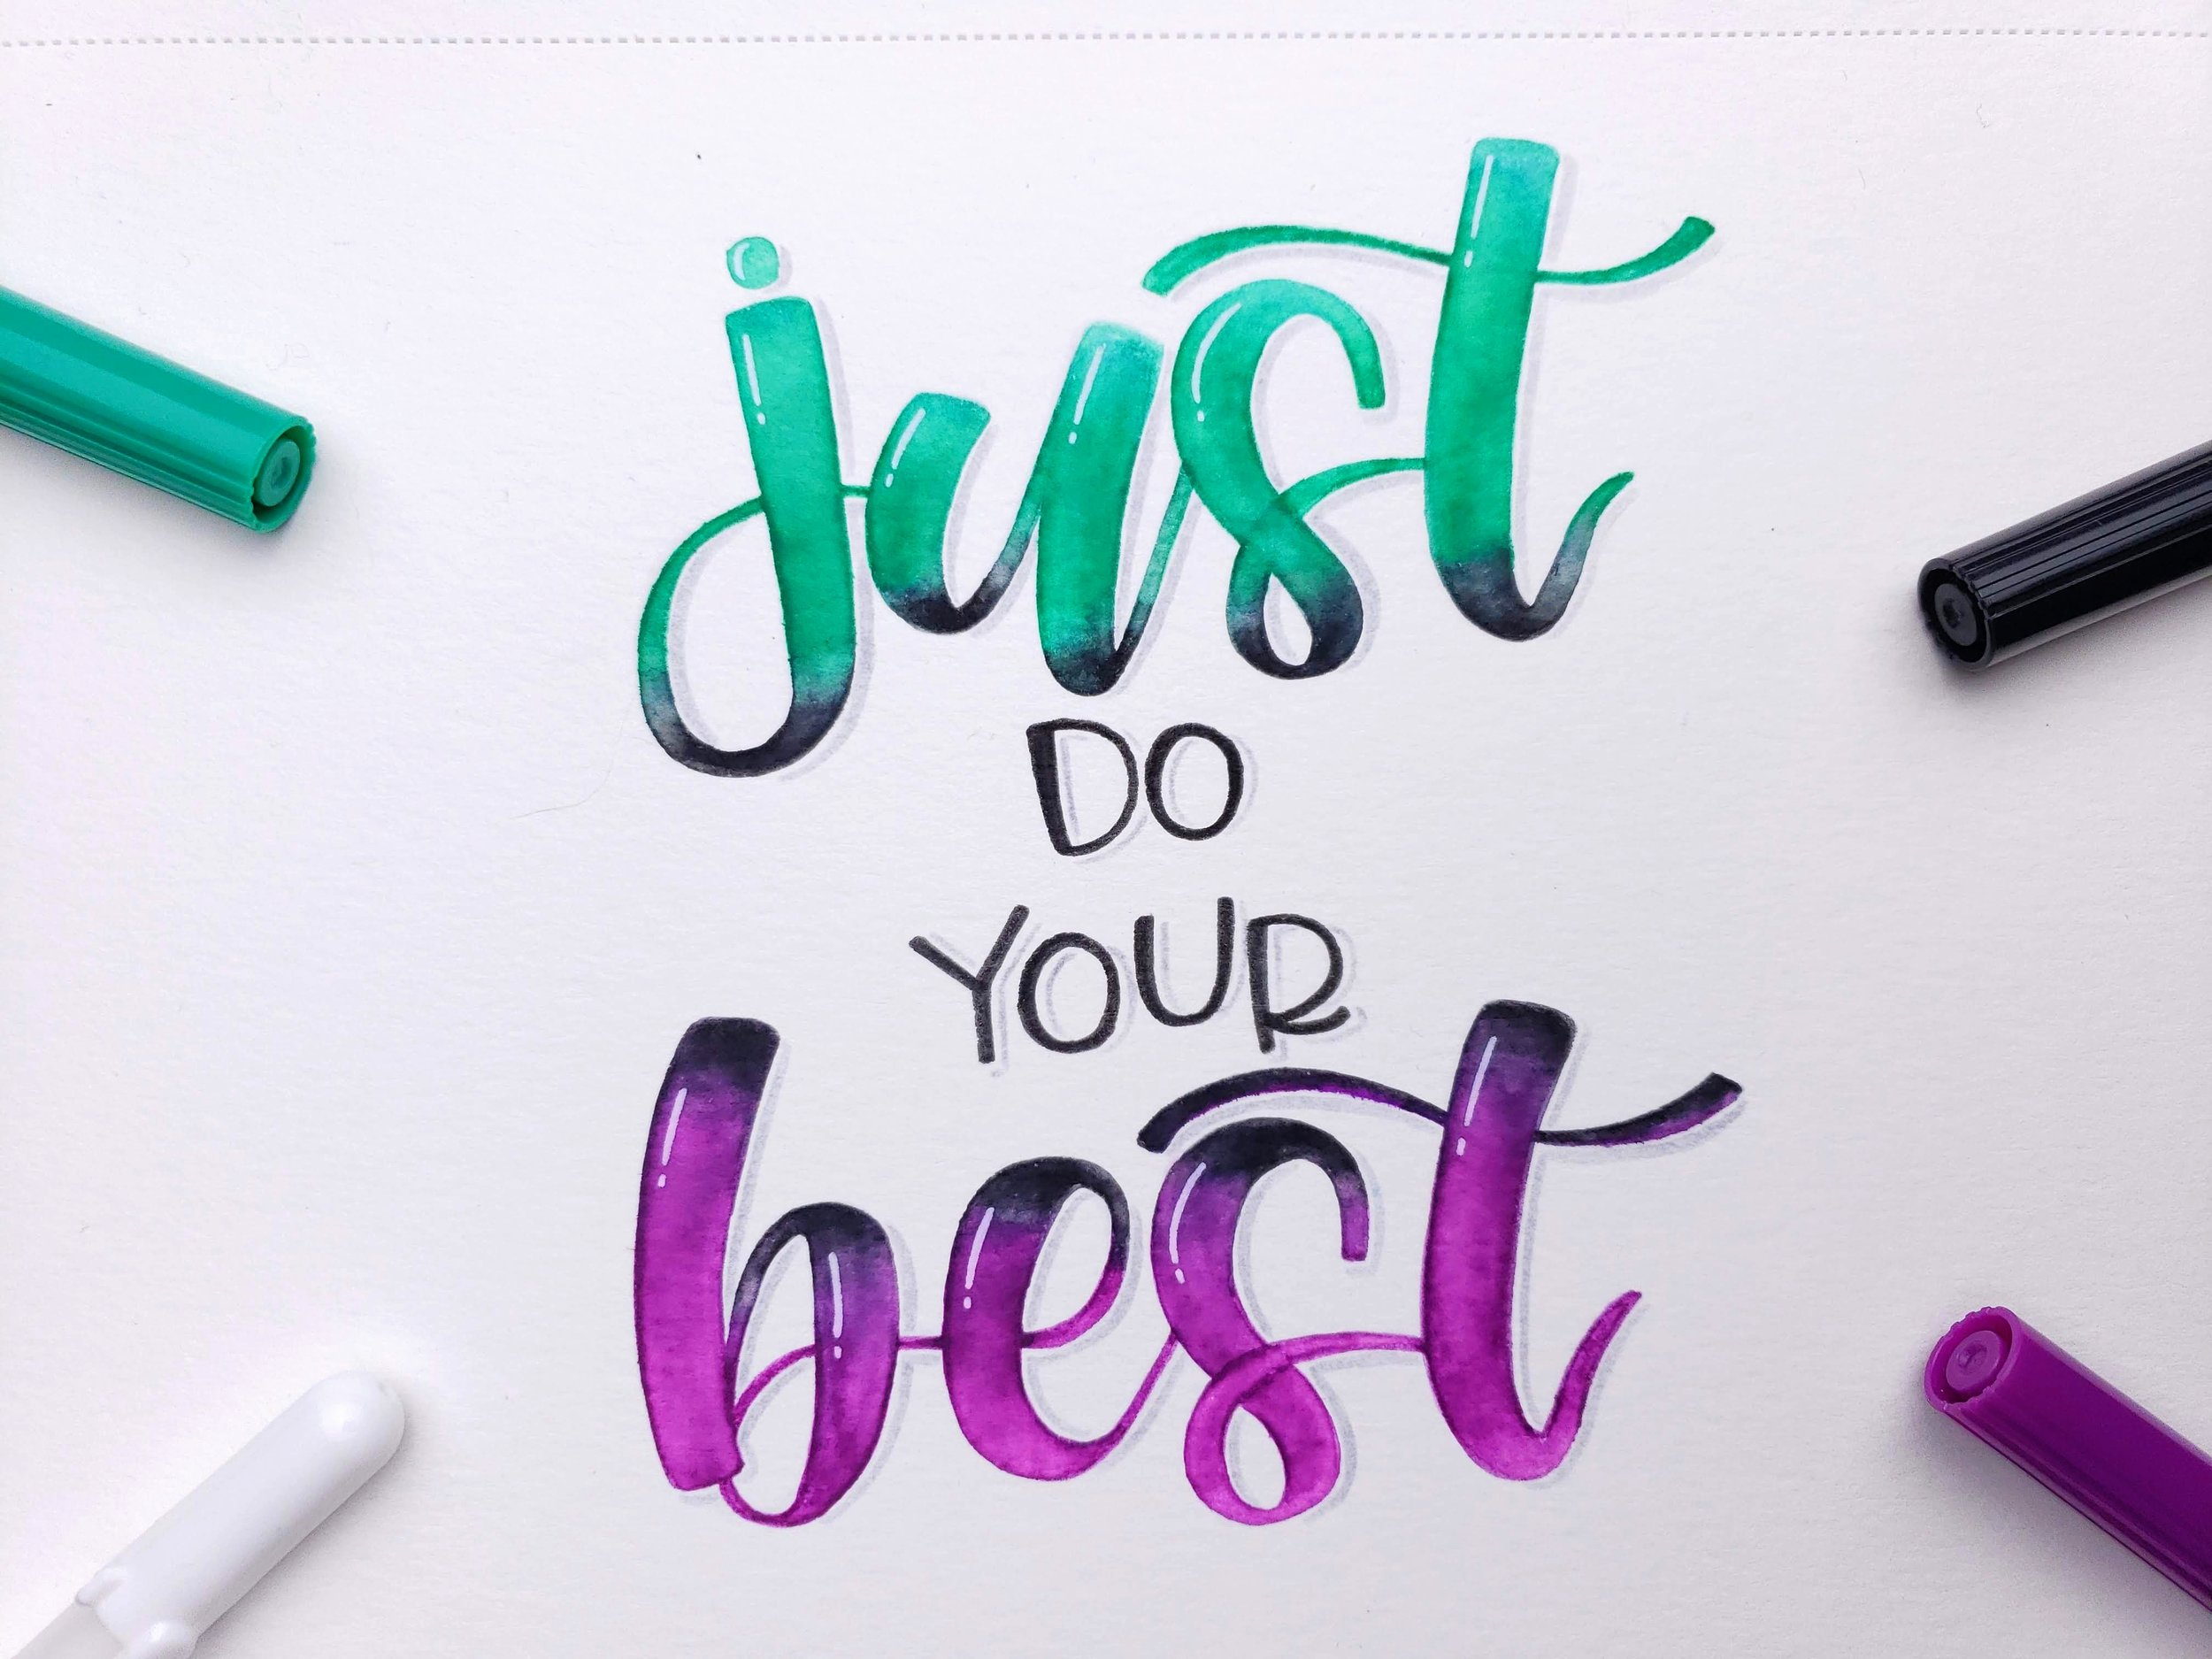 just-do-your-best-letters-by-gigi-hand-lettering-los-angeles-artist-custom-typography-modern-calligraphy-instagram-art